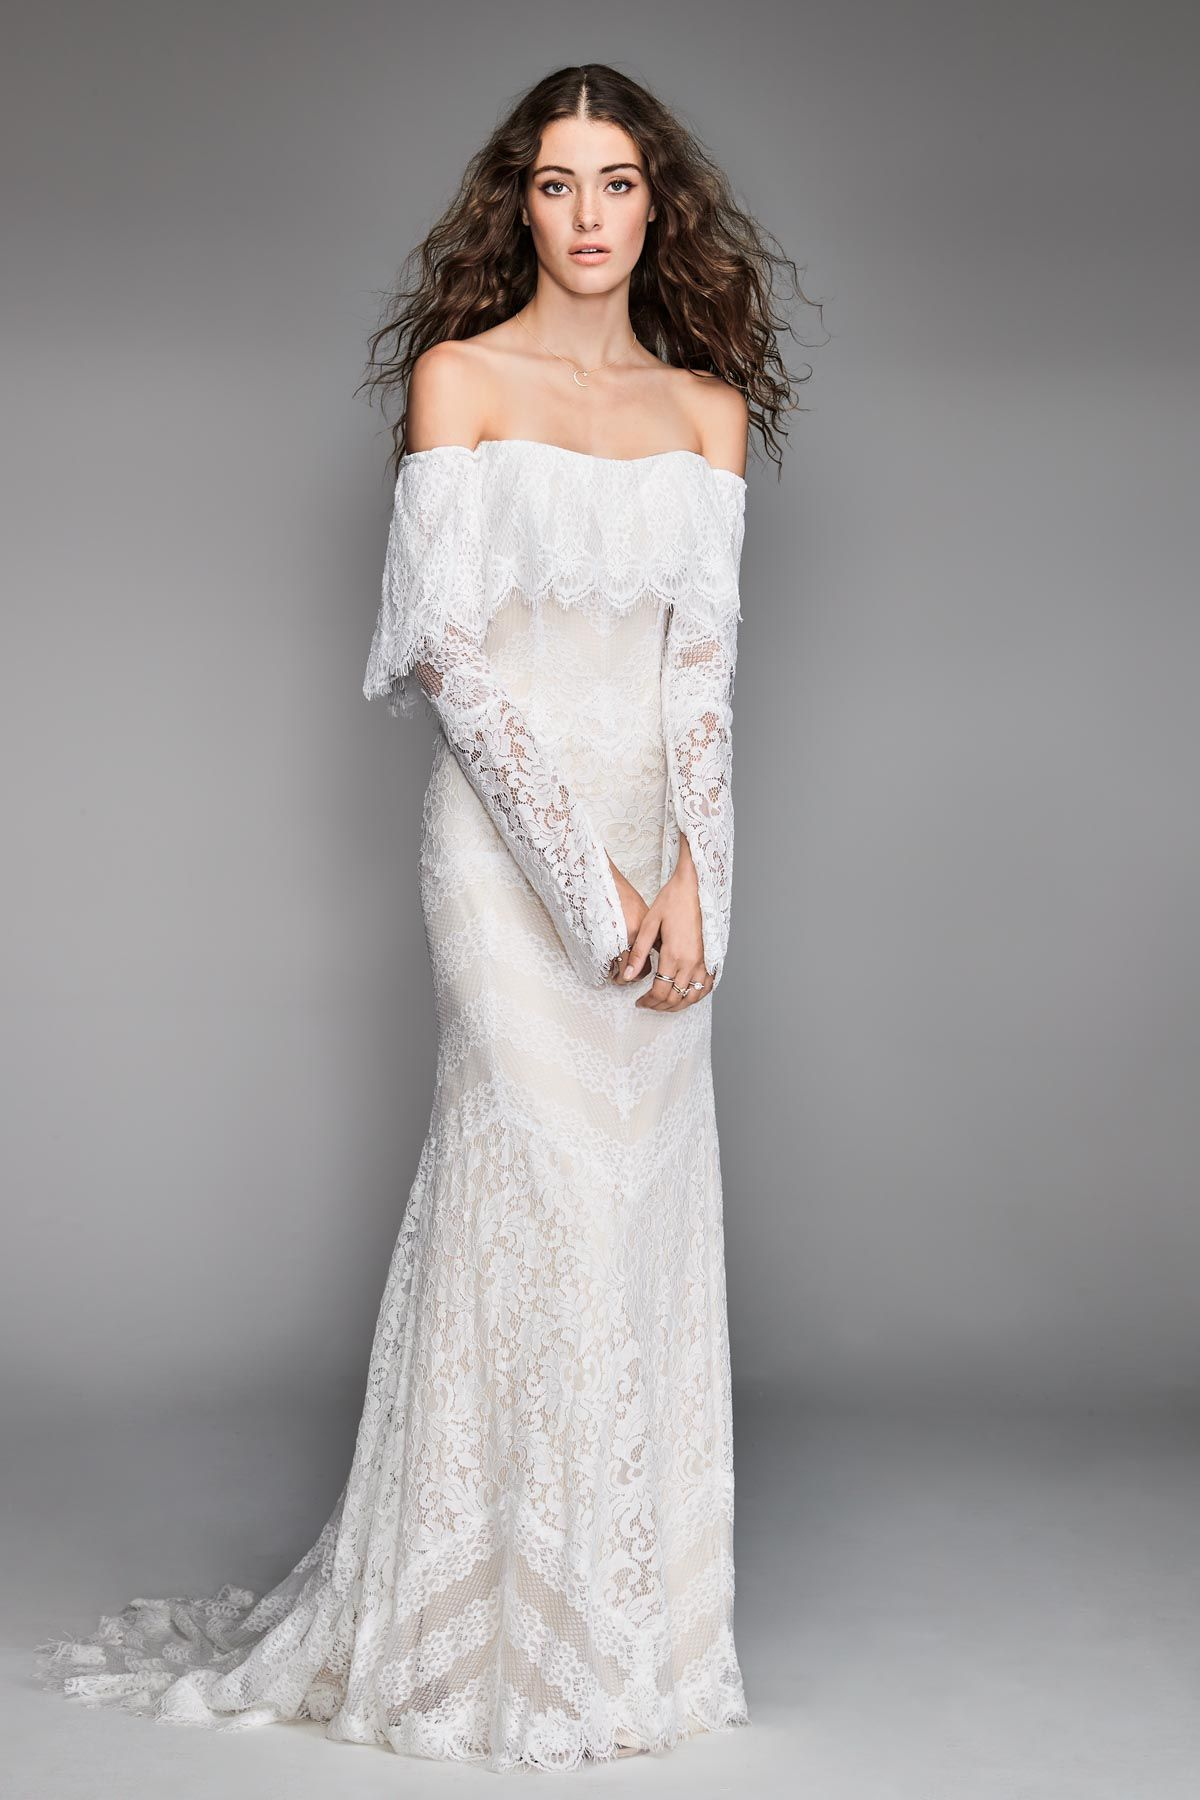 Willowby By Watters Hester 50101 Iv Sz 12 1475 Available At Debra S Bridal Jacksonville Fl 32256 Contact Us To Make An Apt 904 519 9900